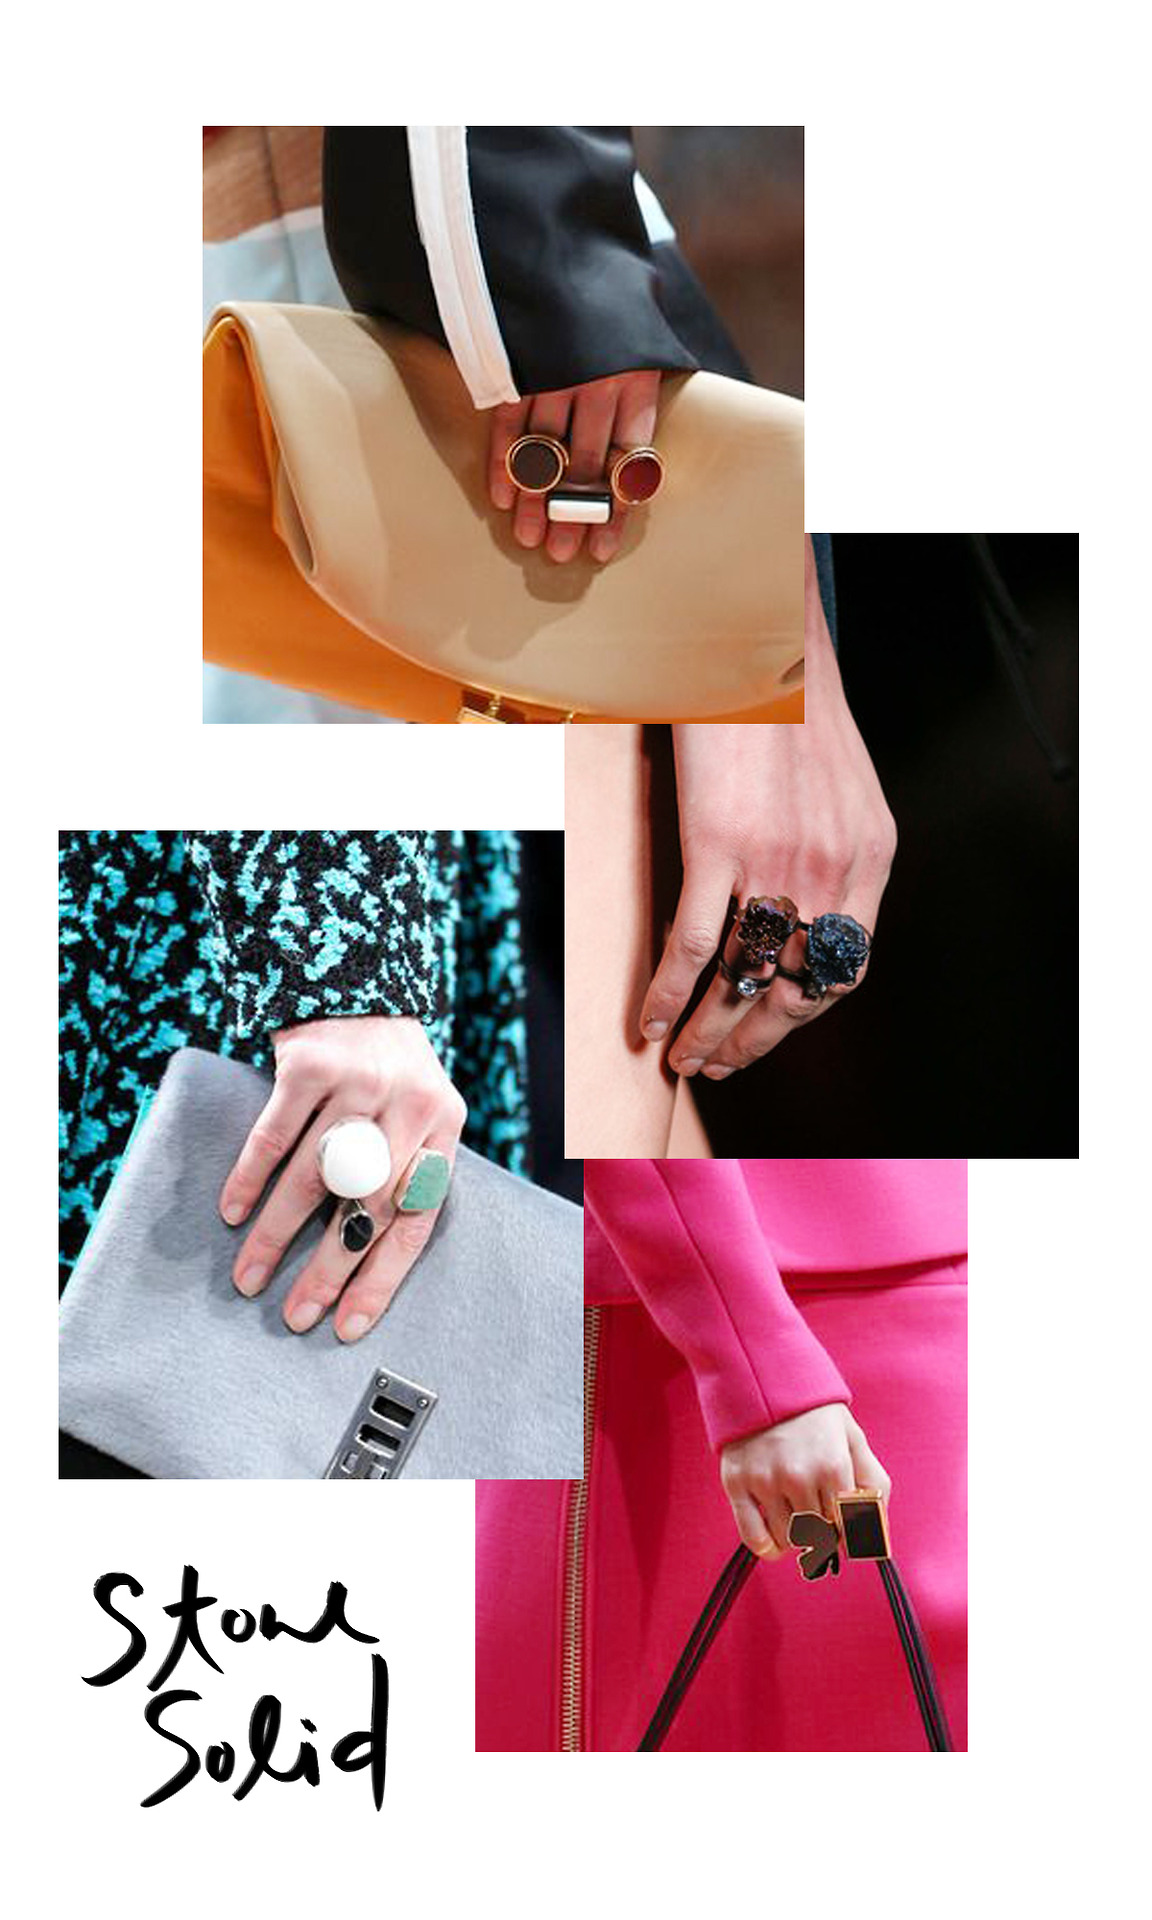 Don't pack up all those teeny tiny gold stacking rings yet, but if the fall runways are any indication of what's to come, oversize stacks are heading our way soon. Open rings with mixed cabochons were spotted on the runways at Proenza Schouler while resin rings in varying styles -some even appeared to store a solid perfume or lip gloss. Fendi sent stacks of chunky titanium anodized druzy rings down the runway. I gotta say I'm into it, especially that top stack of signet-inspired rings.   Images from top to bottom:  Marni ,  Fendi ,  Proenza Schouler ,  Marni     nerd-out moment: Ever wonder how all those insanely colorful druzies and crystals we've been seeing lately look so oil slicky iridescent? T hey are enhanced with a chemical process called Chemical Vapor Deposition(CVD) in which the stones are exposed in a gaseous environment that contains titanium. During the process the metal bonds on a molecular level with the mineral. These can then be  anodized  to create create a gorgeous variety of colors. Basically, they cover the stones in tiny bits of metal and then dip the metal into a bath of acid with an electric current running through it. The amount of current going through the acid determines the color. It's pretty mind blowing in person.